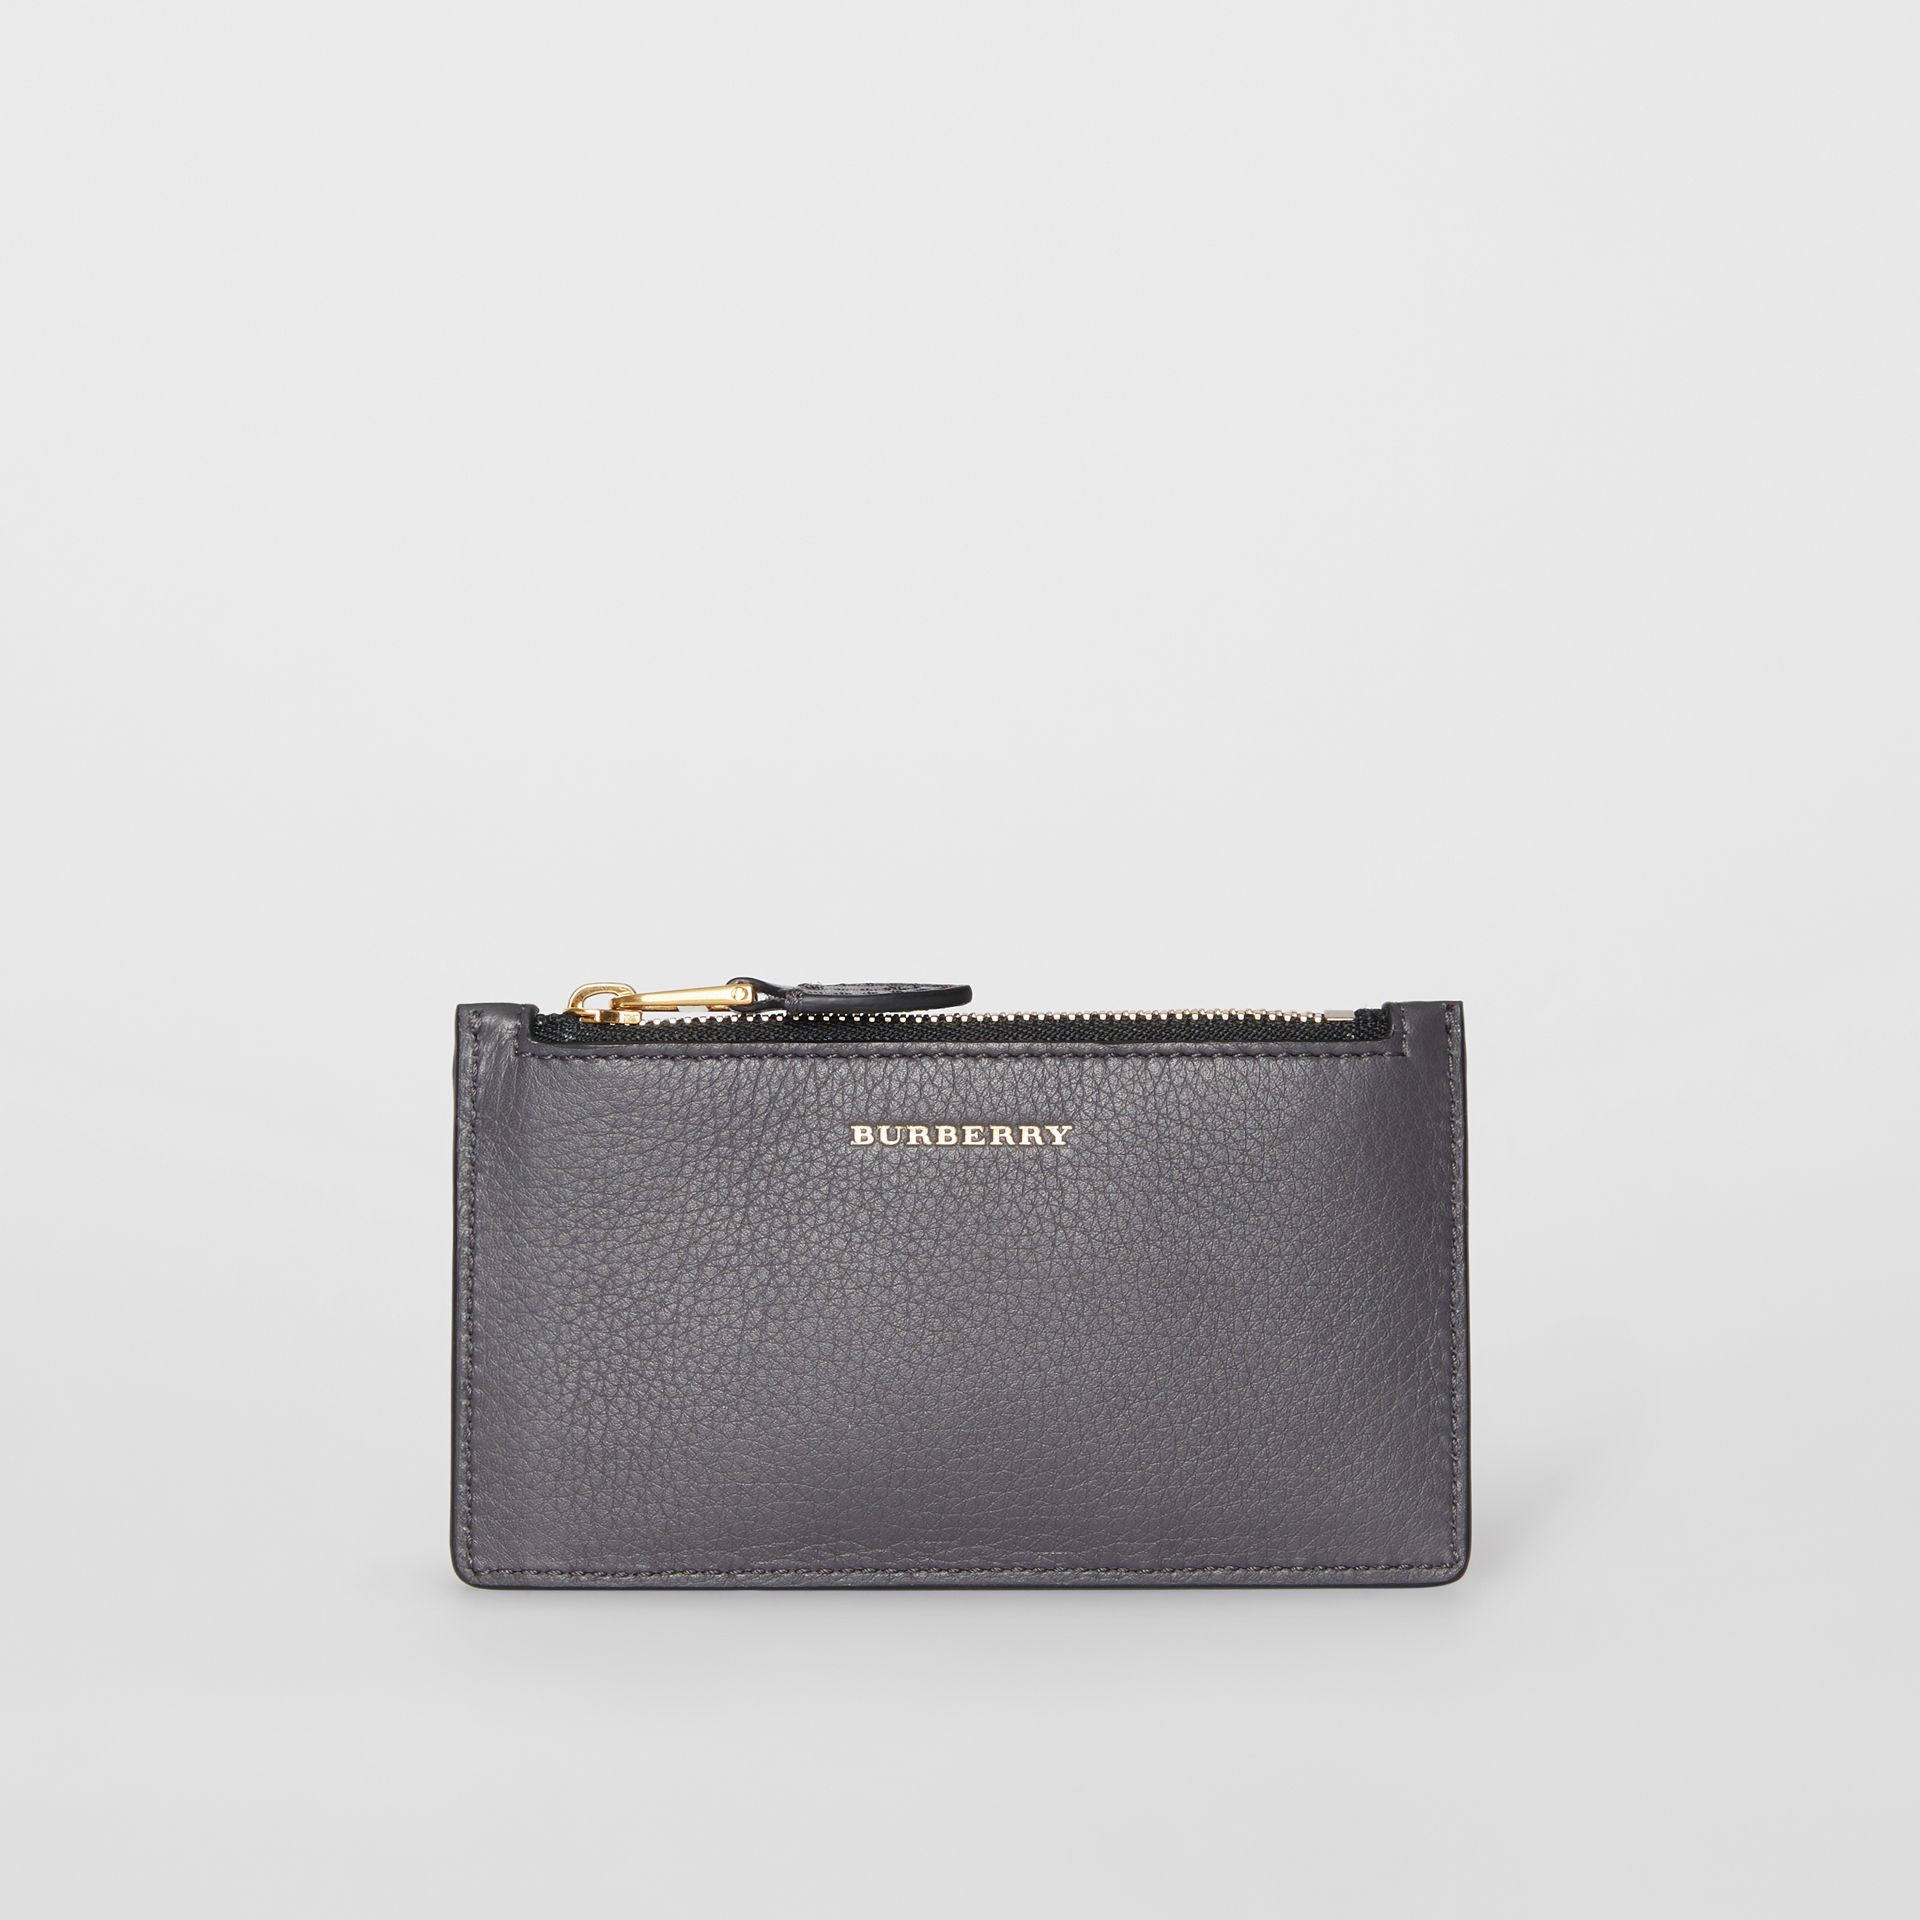 Two-tone Leather Card Case in Charcoal Grey - Women | Burberry - gallery image 2